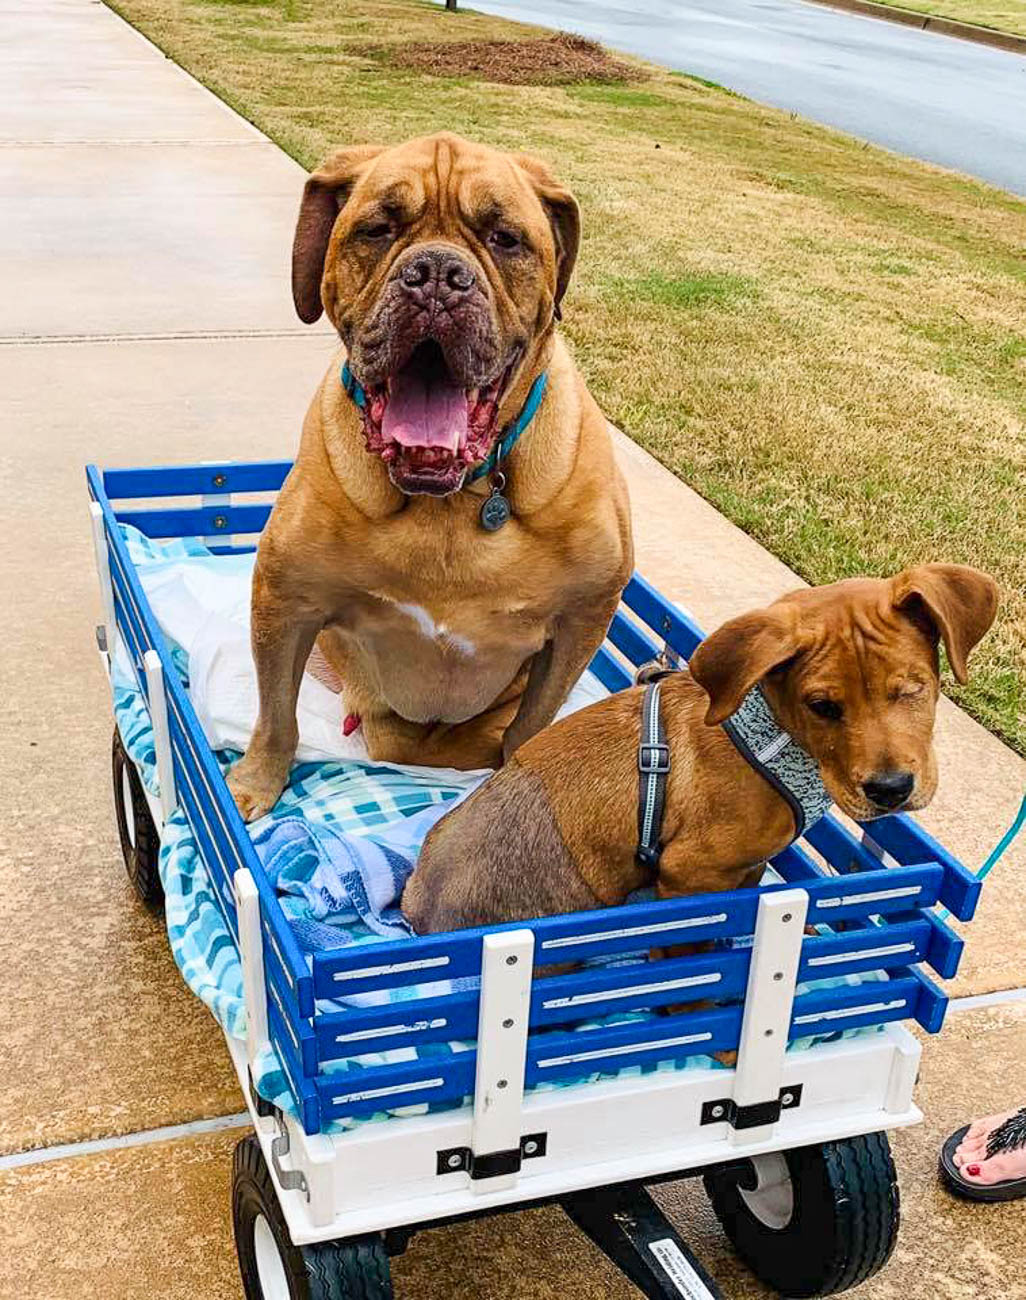 Trooper and his puppy brother, Oliver, going for a wagon ride / Image courtesy of The Trooper Telegraph // Published: 9.8.19